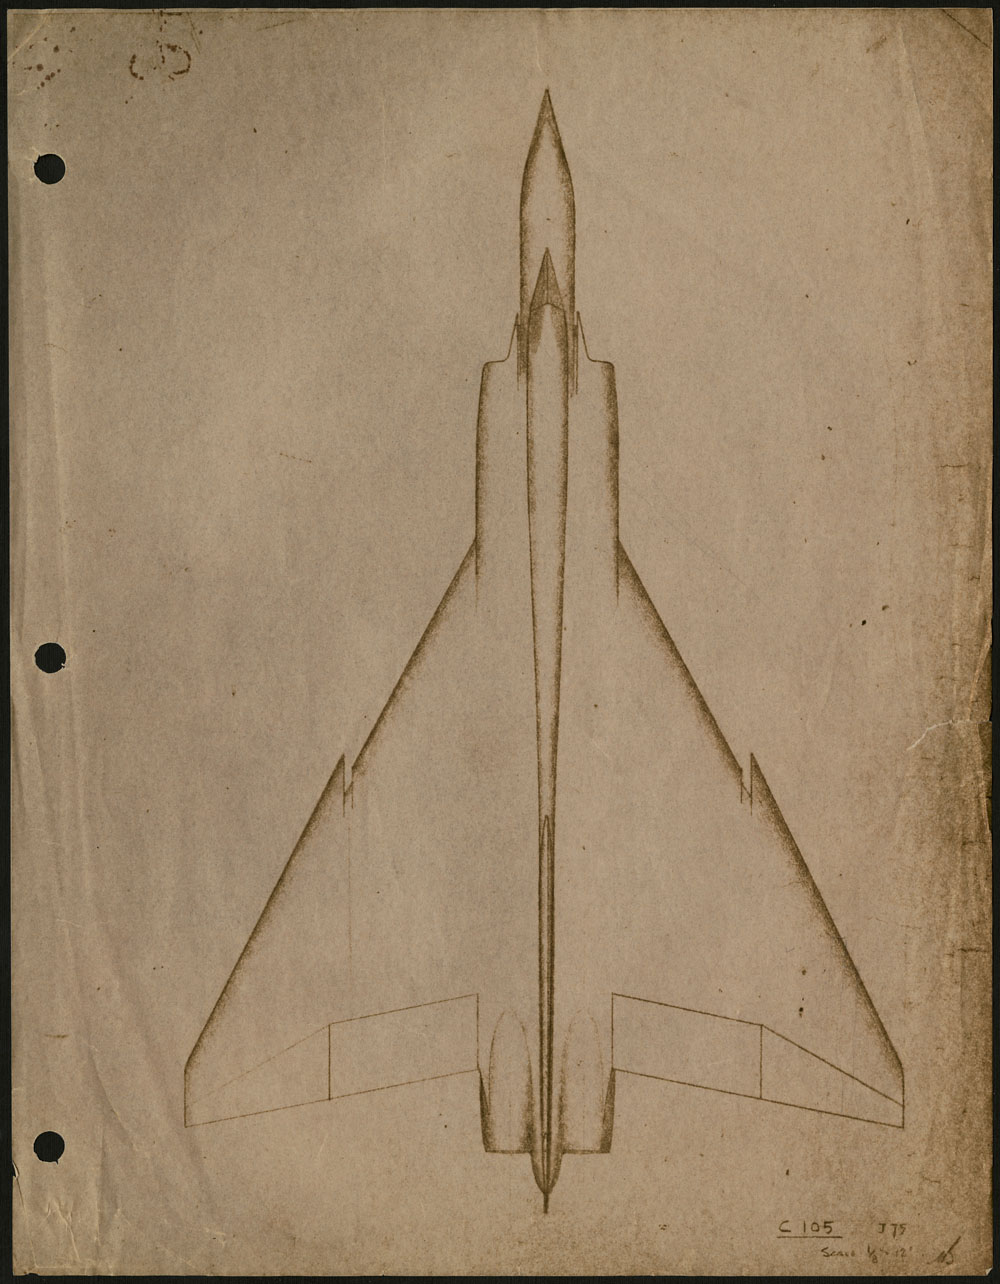 A sketch of the outline of a very futuristic looking airplane.